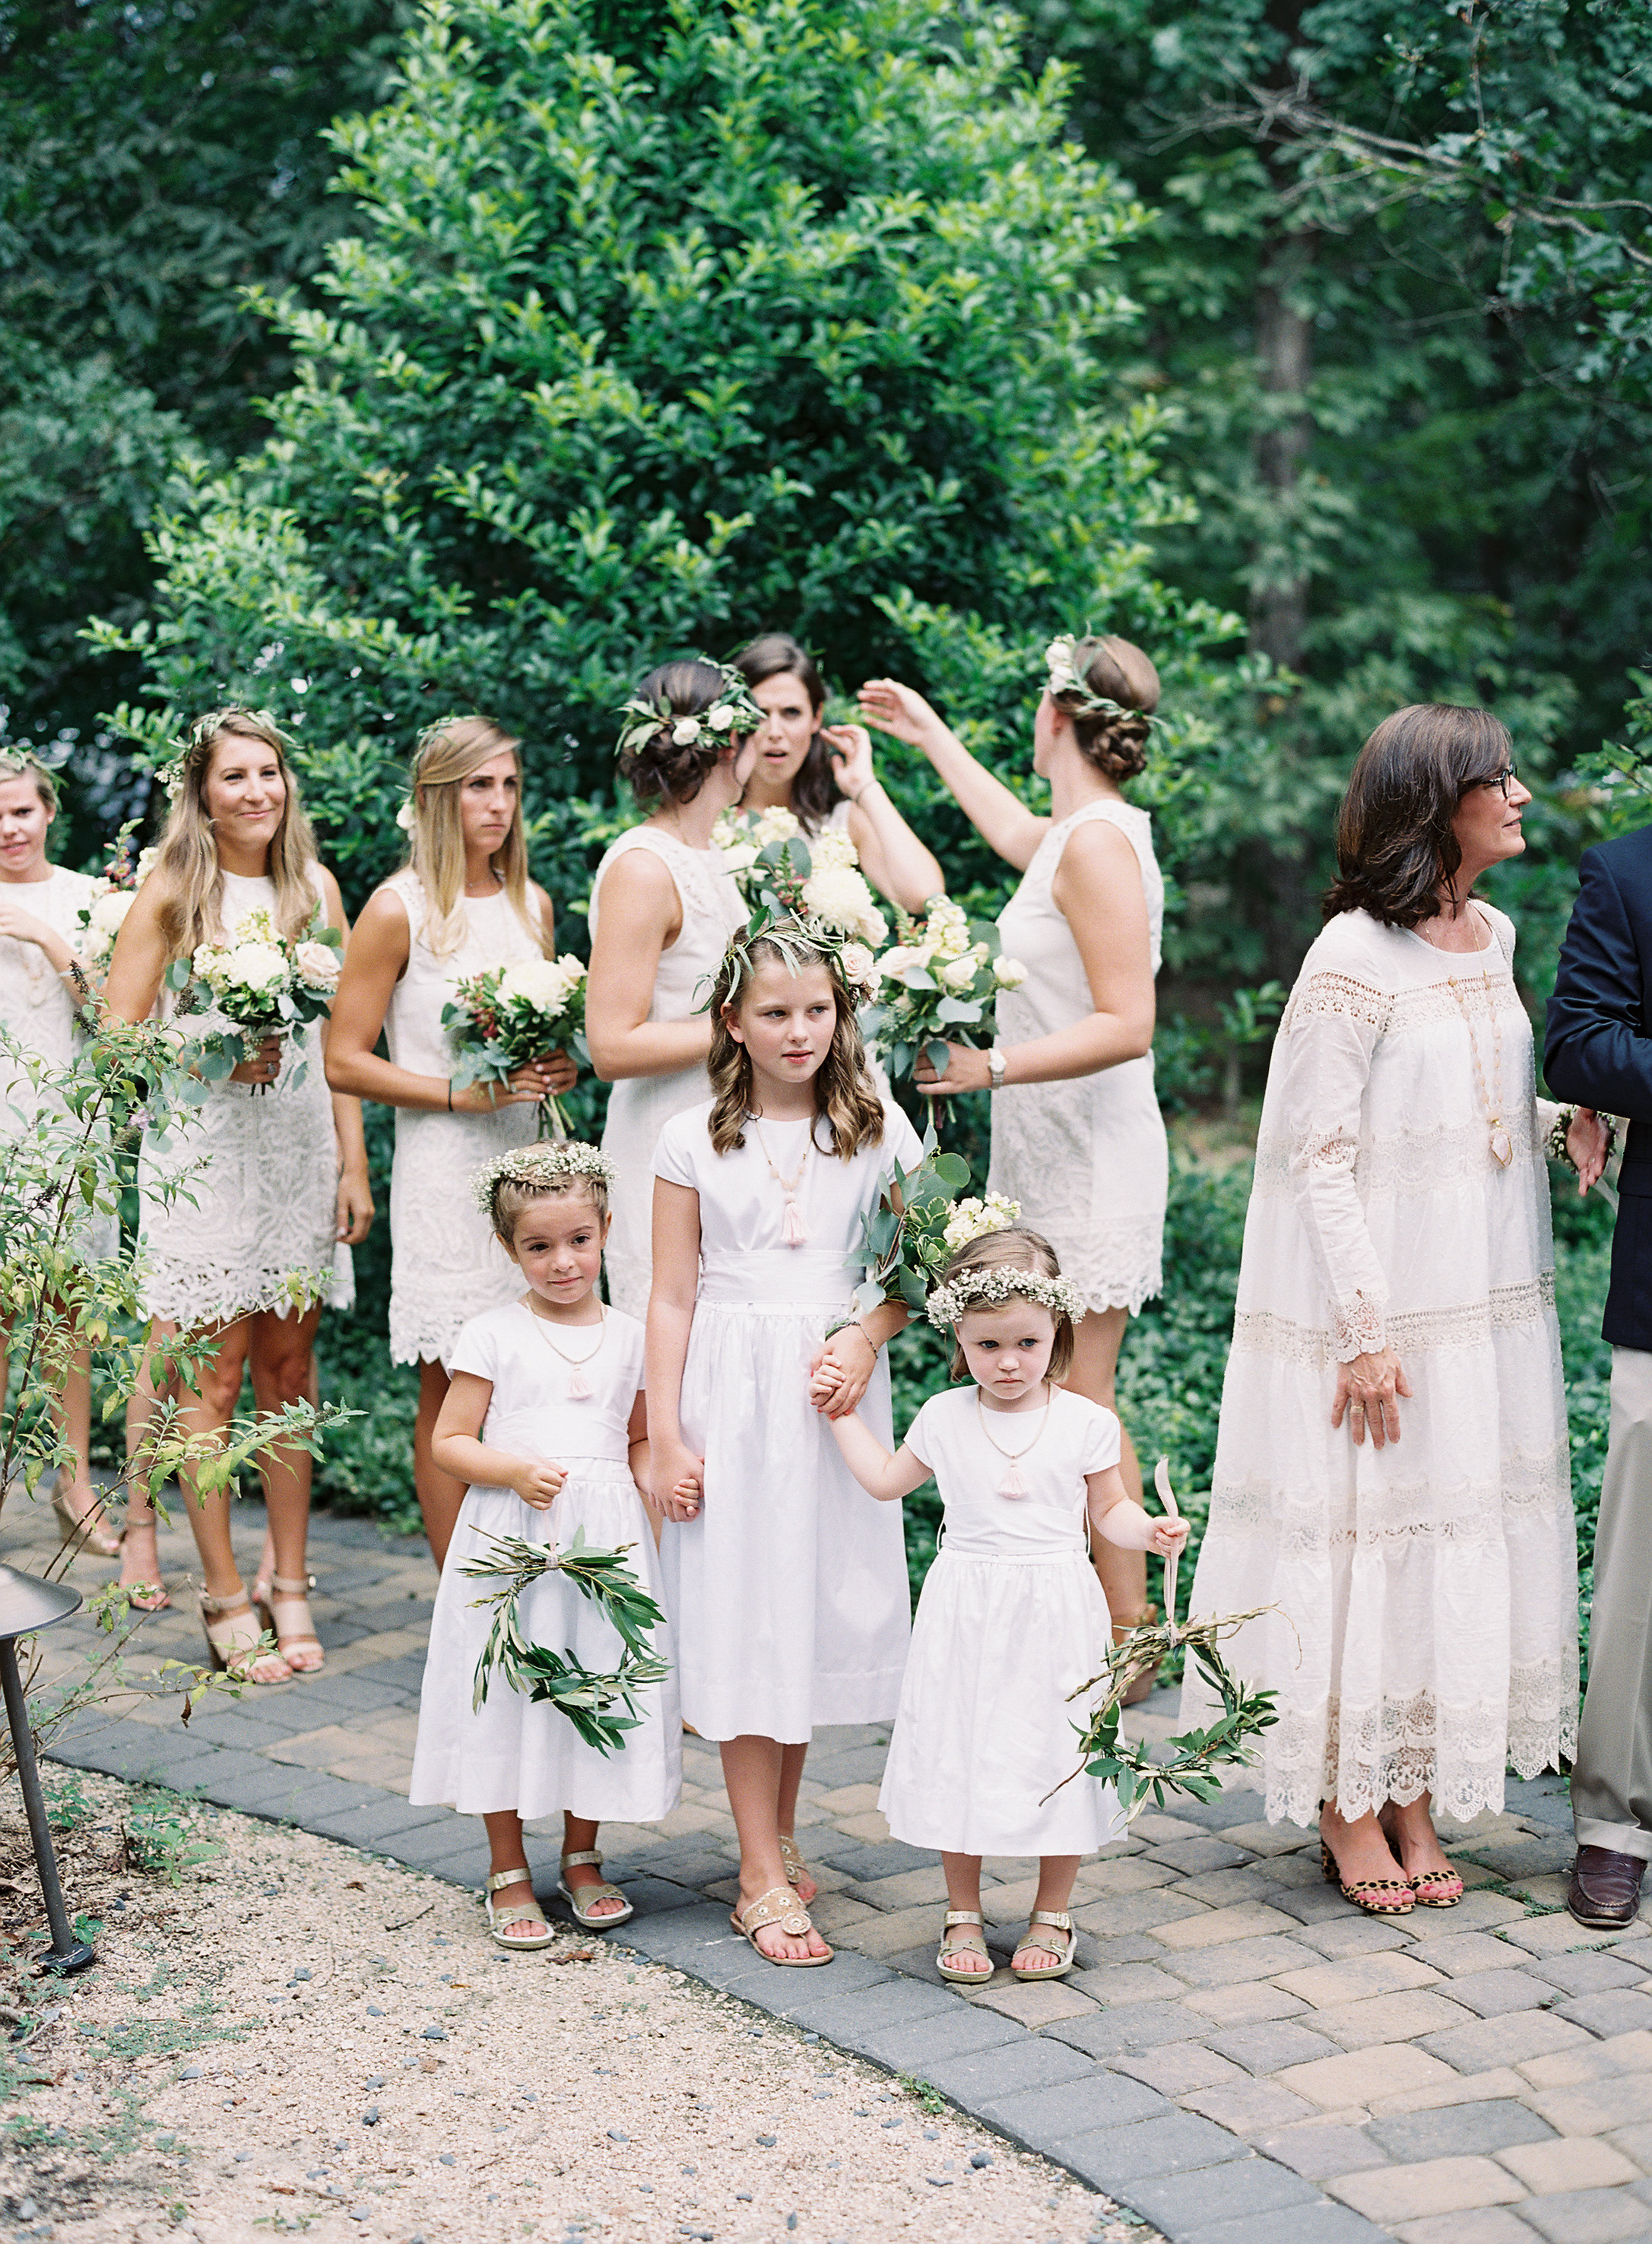 Patterson and Graham's Joyful and Enchanting Outdoor Southern Wedding at Morning Glory Farms now on Cottage Hill